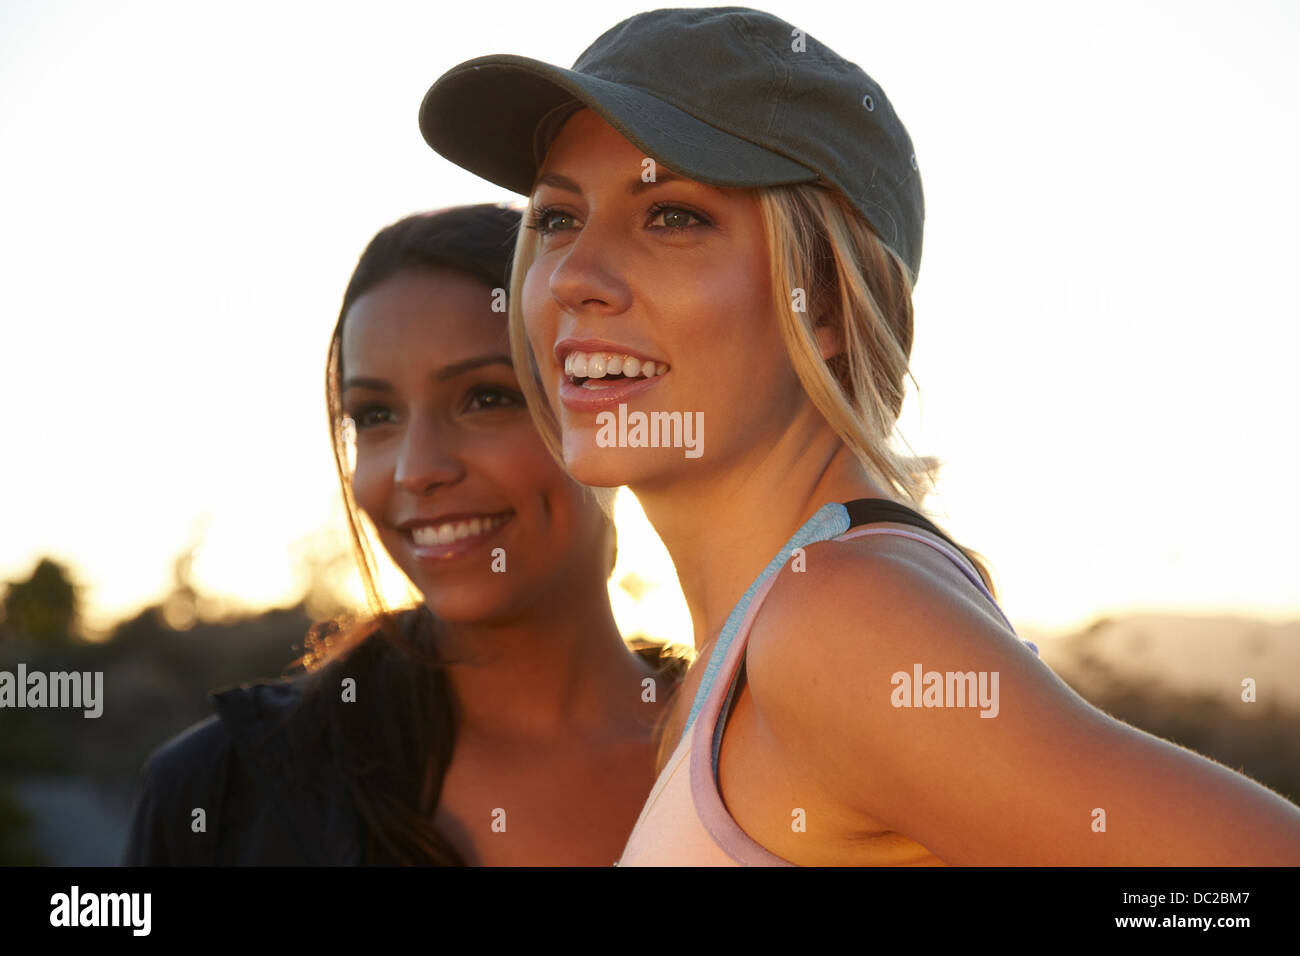 Women looking into the distance - Stock Image